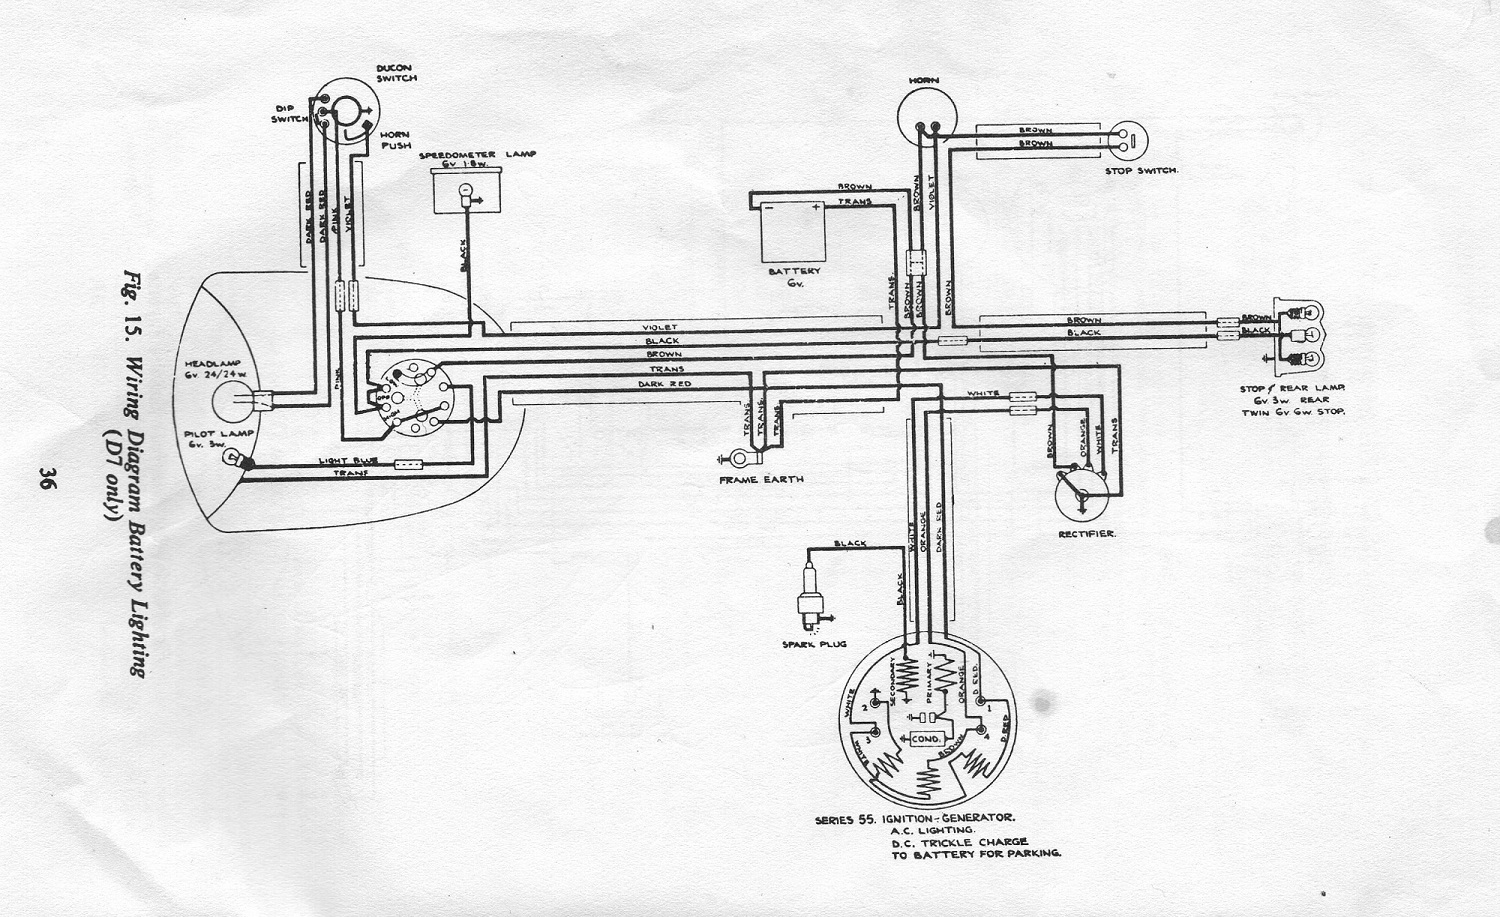 caterpillar d3 wiring harness caterpillar radiator wiring